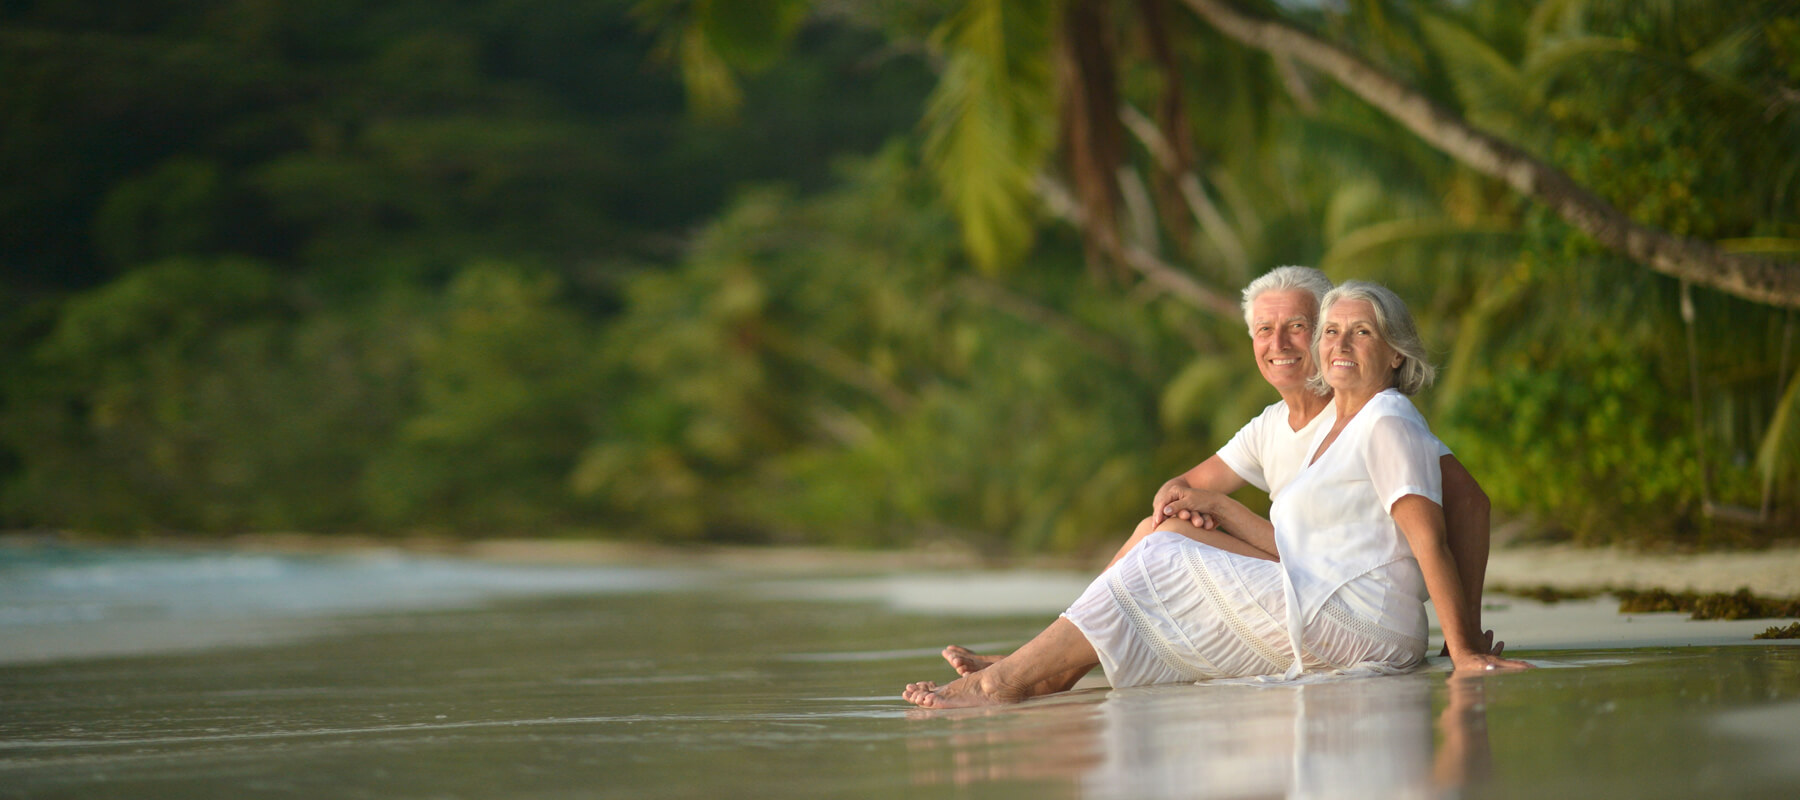 Discounted Senior Travel Packages Senior Travel Deals